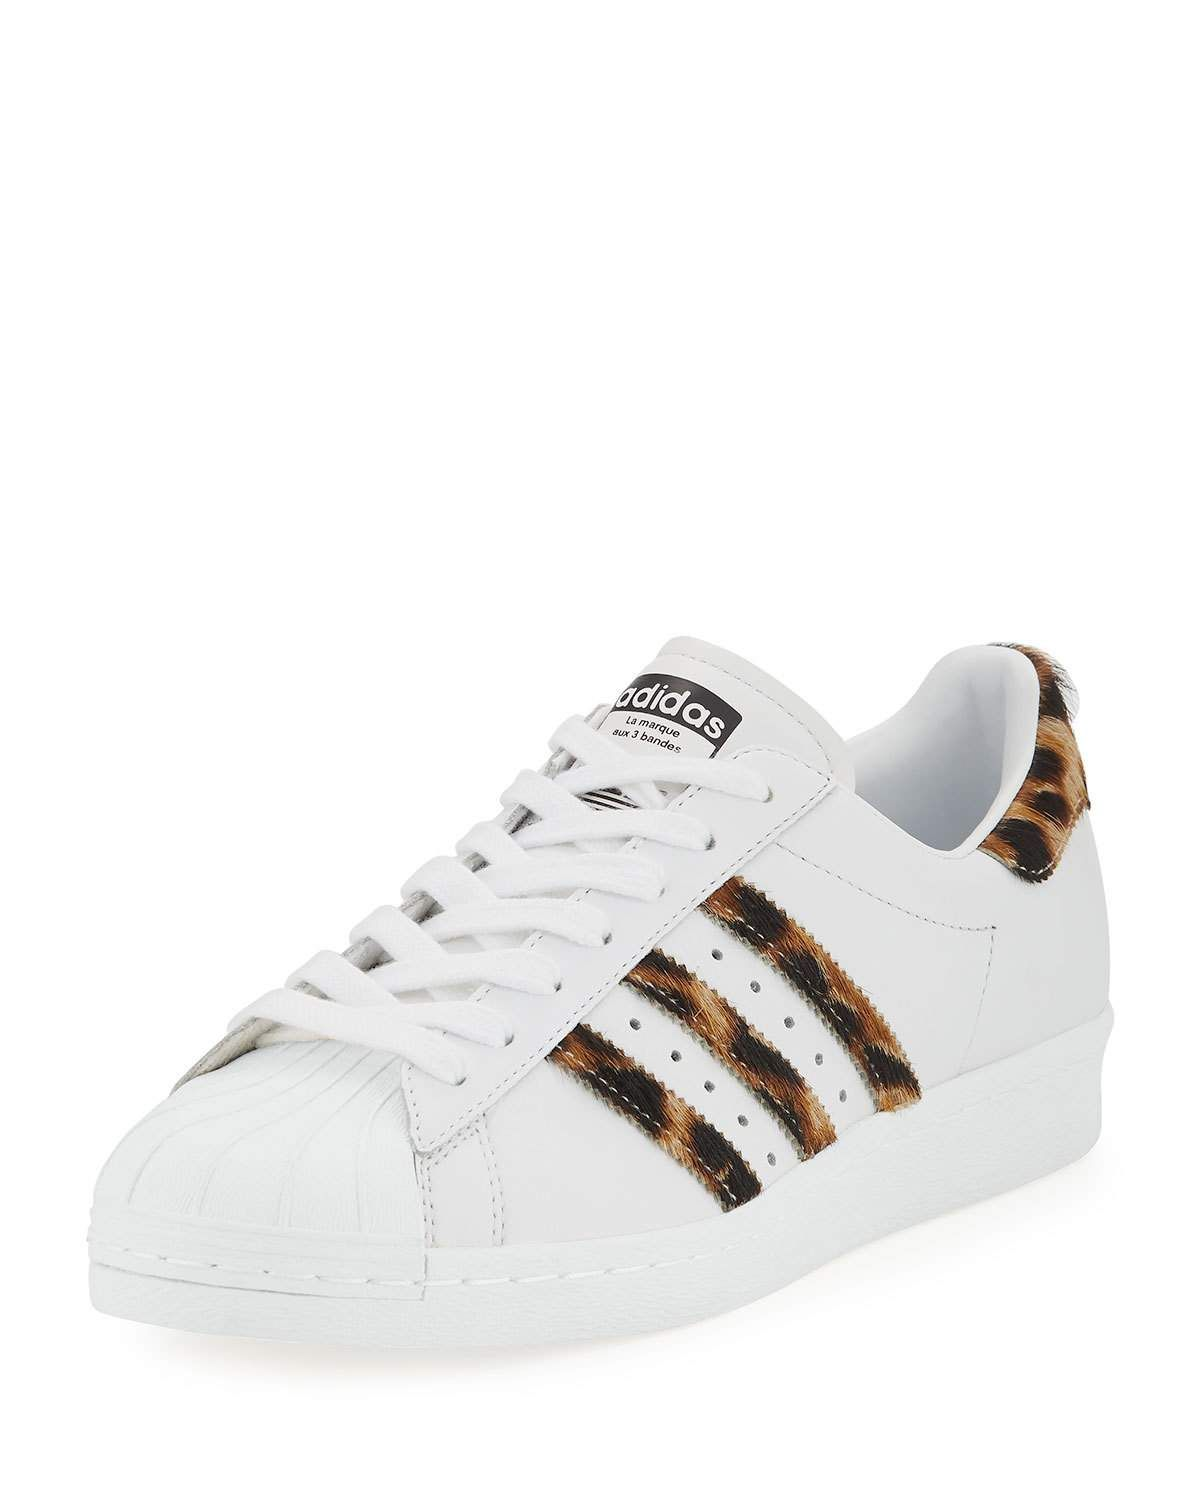 Adidas Superstar Leopard Sneakers | Adidas superstar, Adidas ...